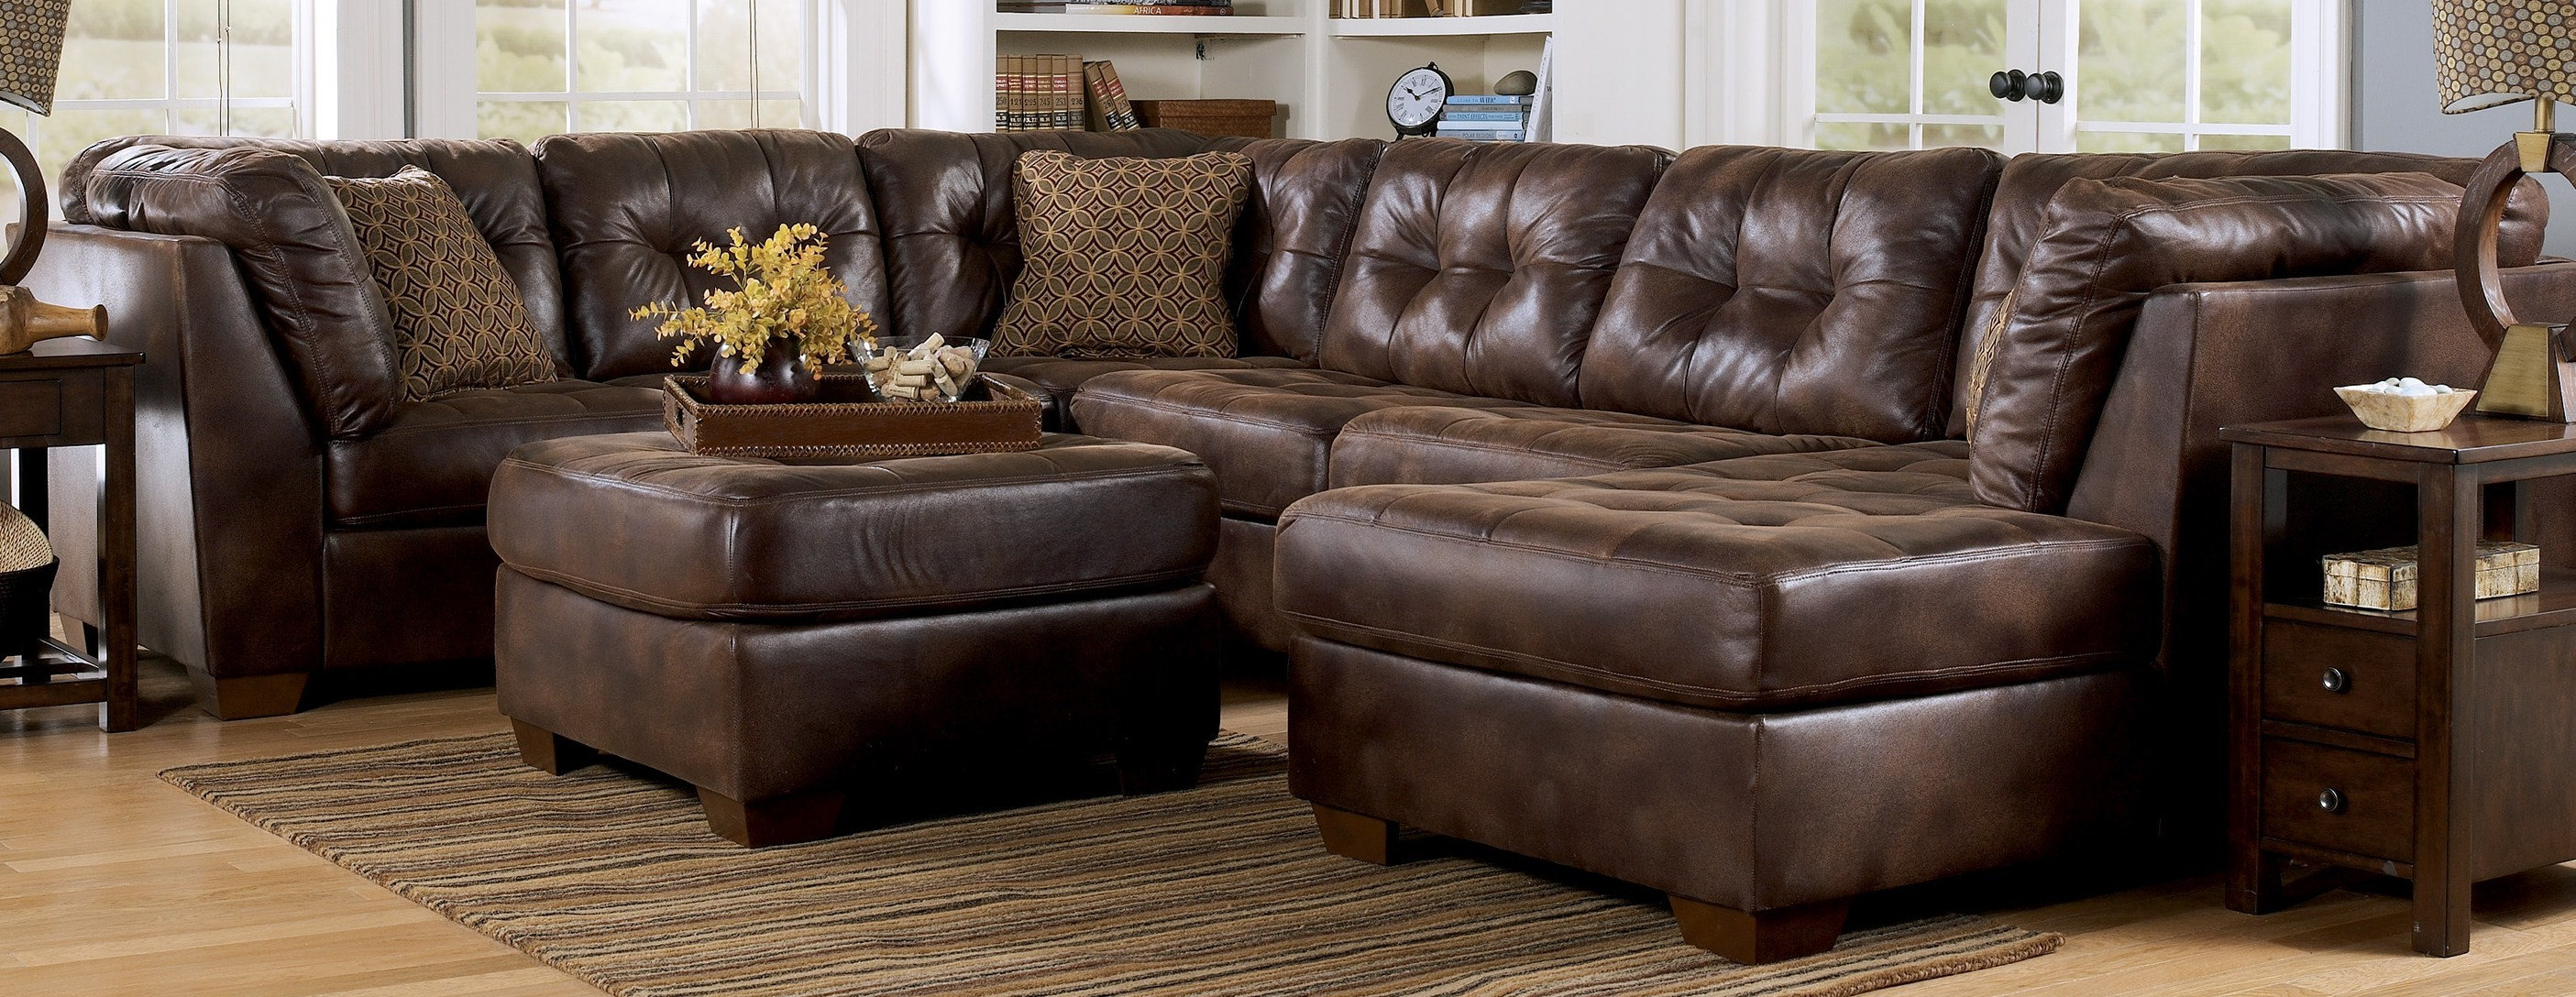 leather sectional sofa brown photo - 10